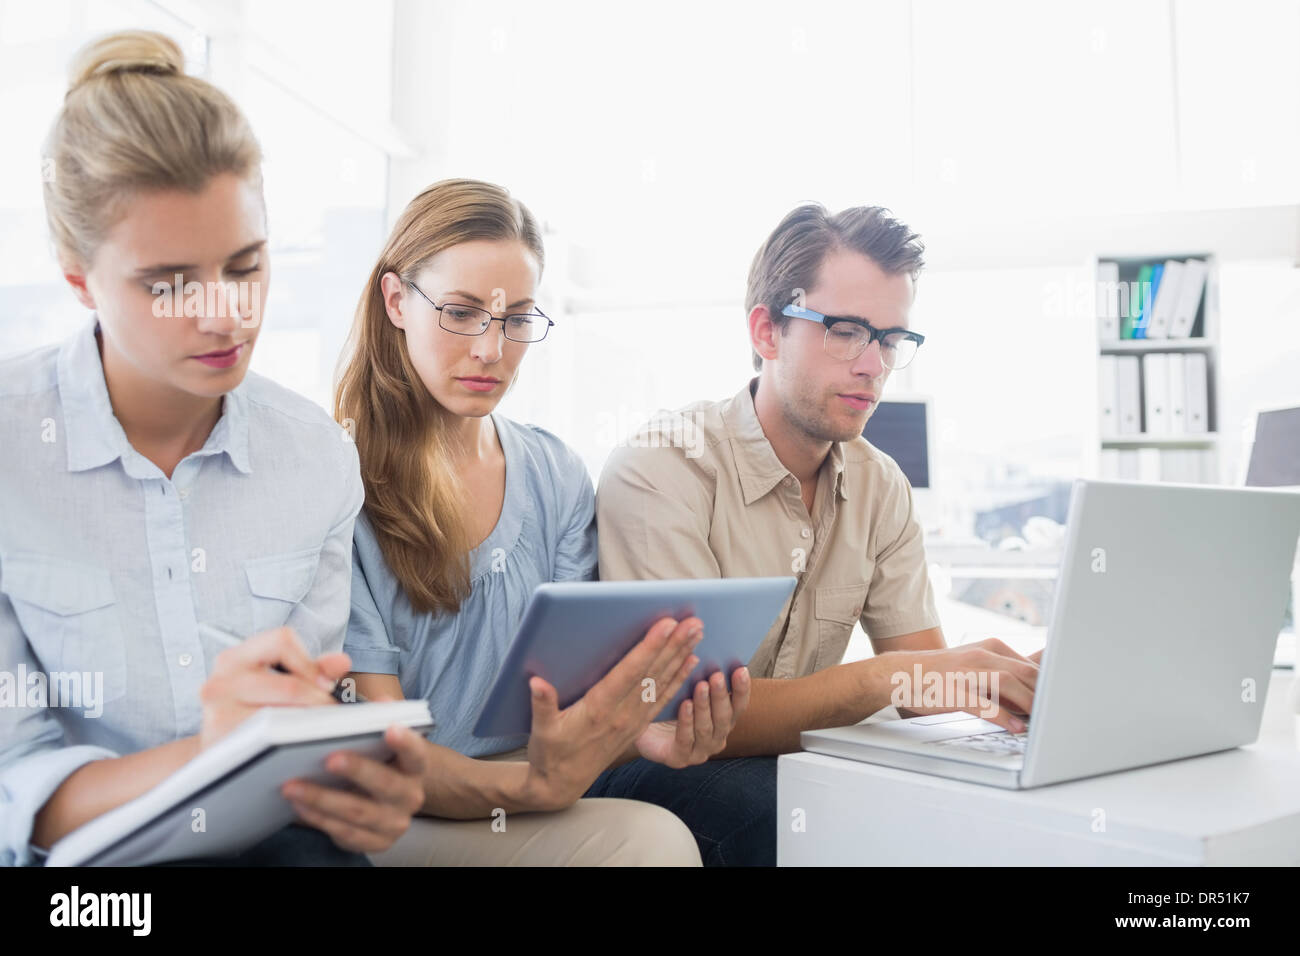 Concentrated three young people in office - Stock Image